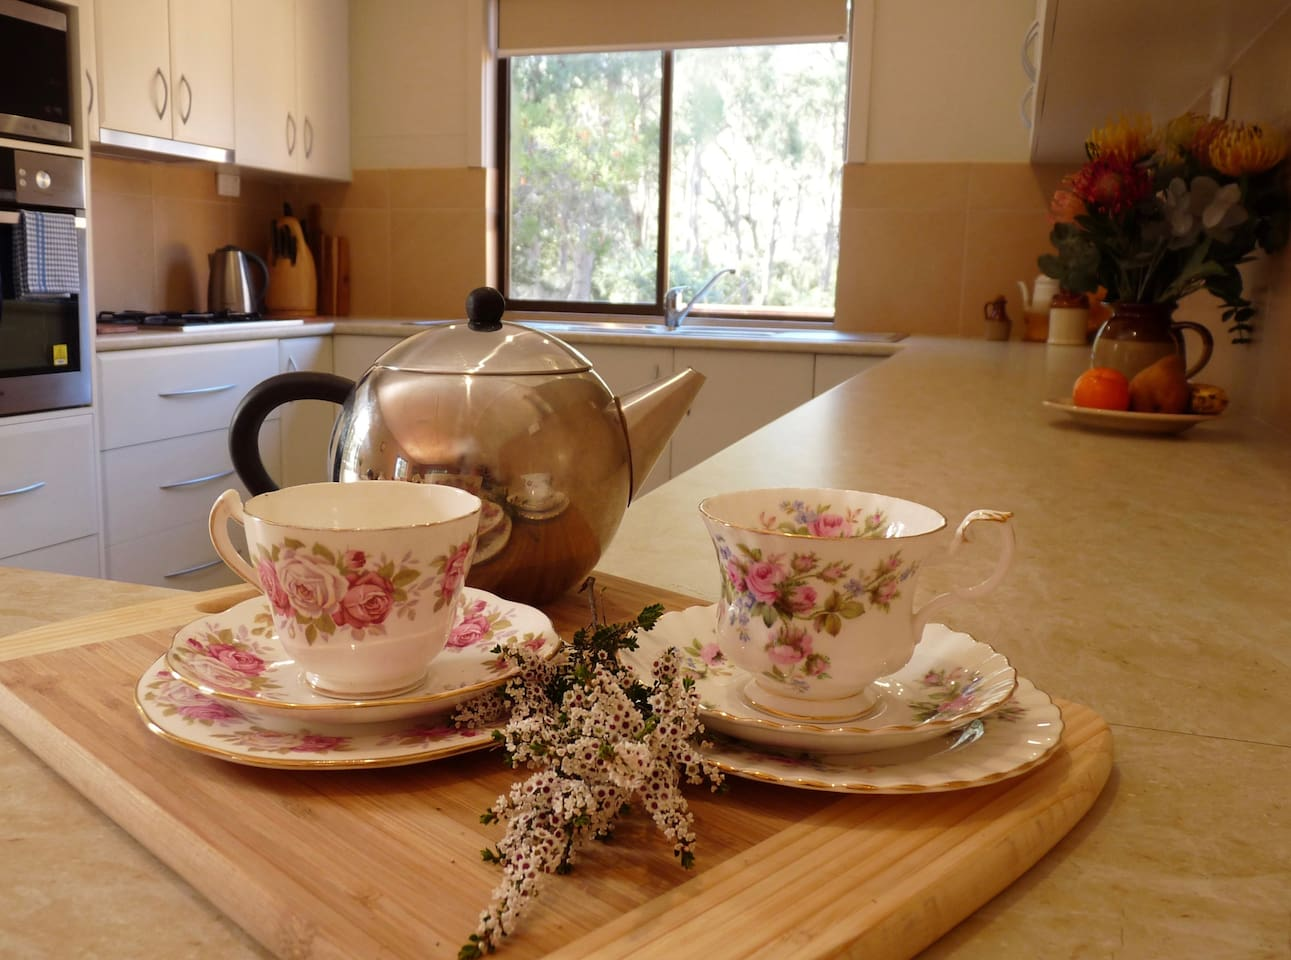 Banksia Hideaway has a well equipped, modern kitchen. Quite often small groups book all of the four cottages on the property and meet and dine together in this cottage which has sufficient crockery and cutlery etc. for 20 people.